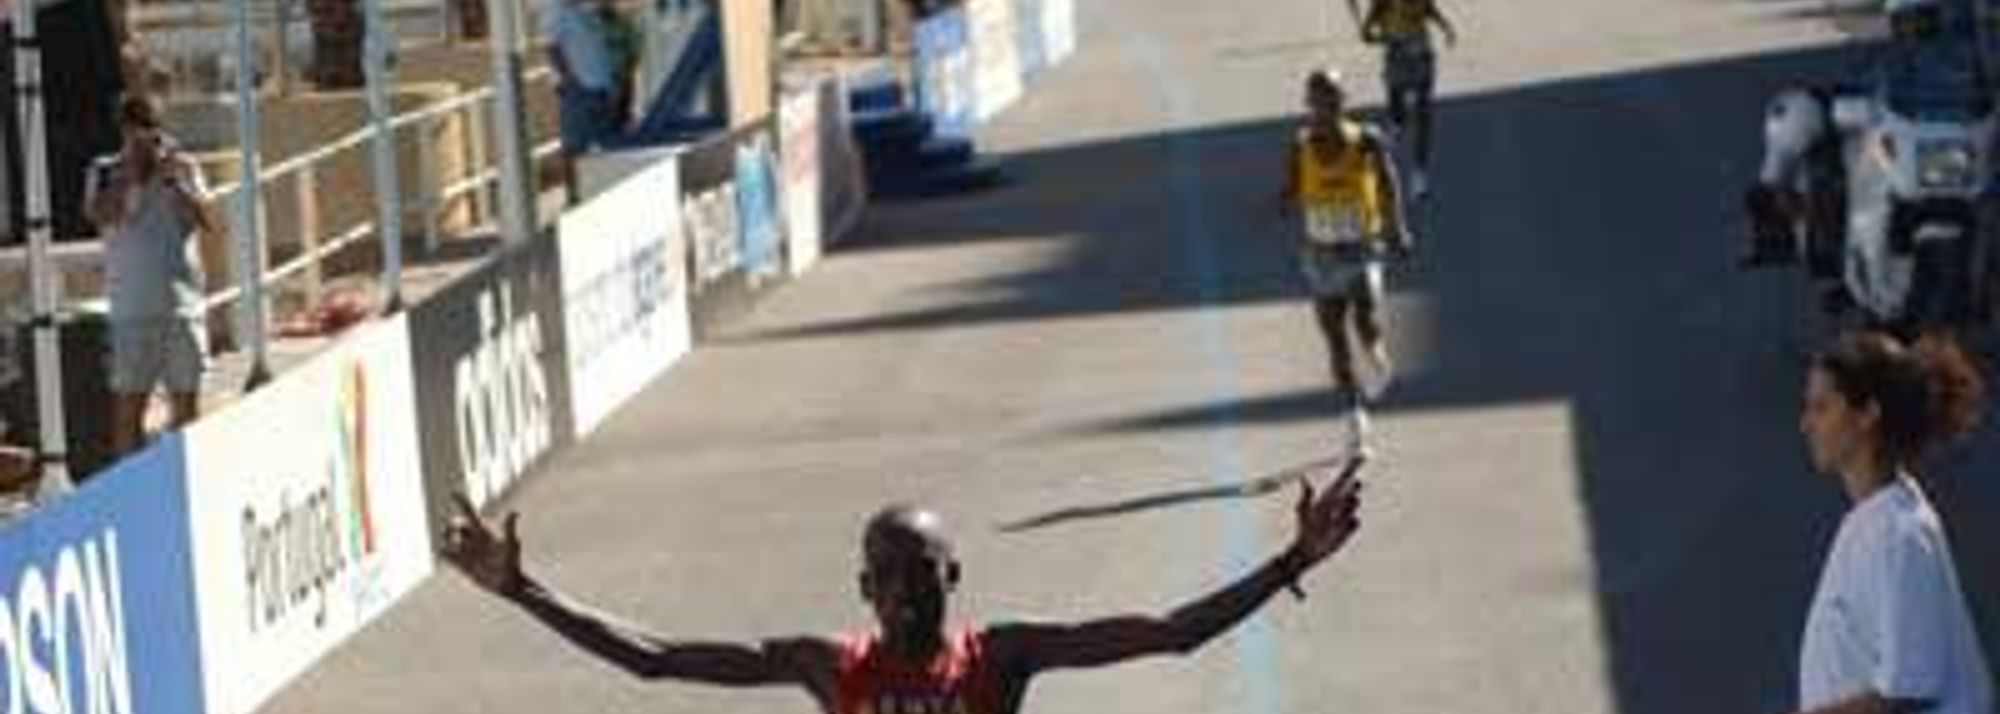 After a closely run race, Martin Lel won the final sprint to snatch individual gold for Kenya in the men's race in Vilamoura this morning